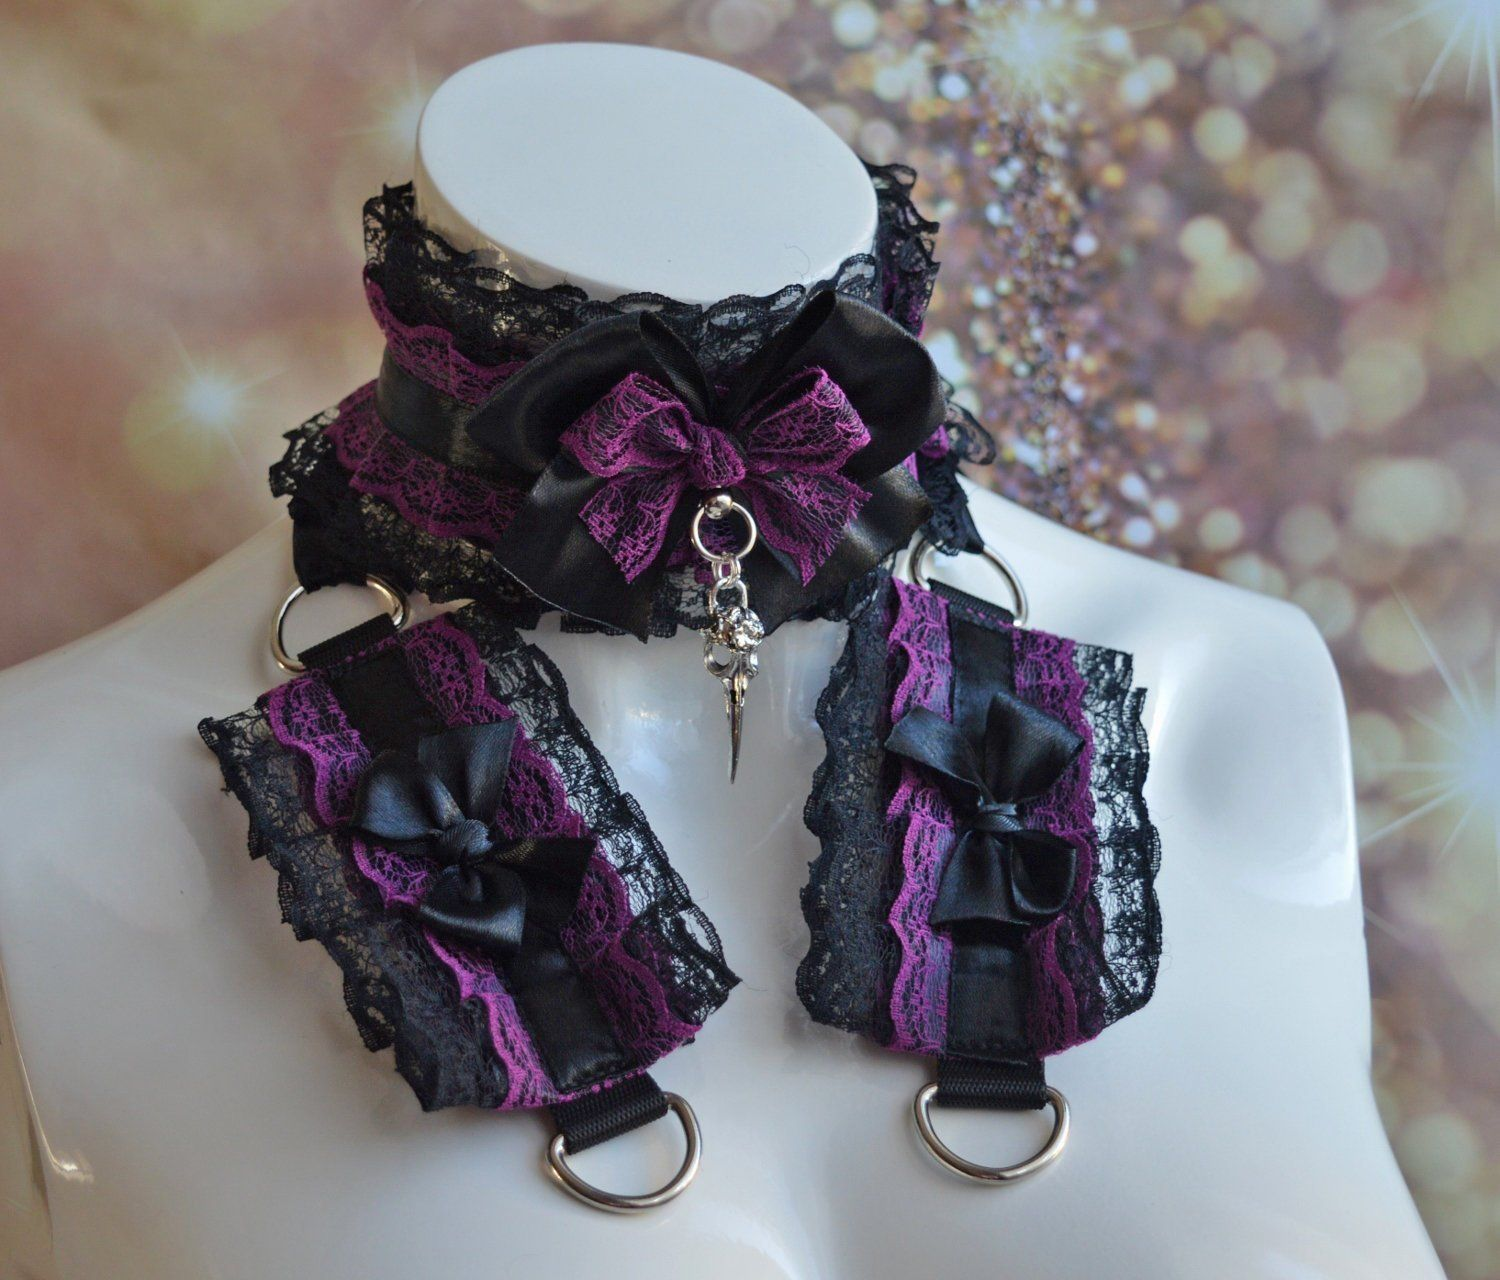 Made To Order Gothic Choker And Wristband Set Ravenora Goth Victorian Women Lace Collar Cuffs Dark Cabaret Princess By Nekollars With Images Gothic Chokers Chokers Victorian Women